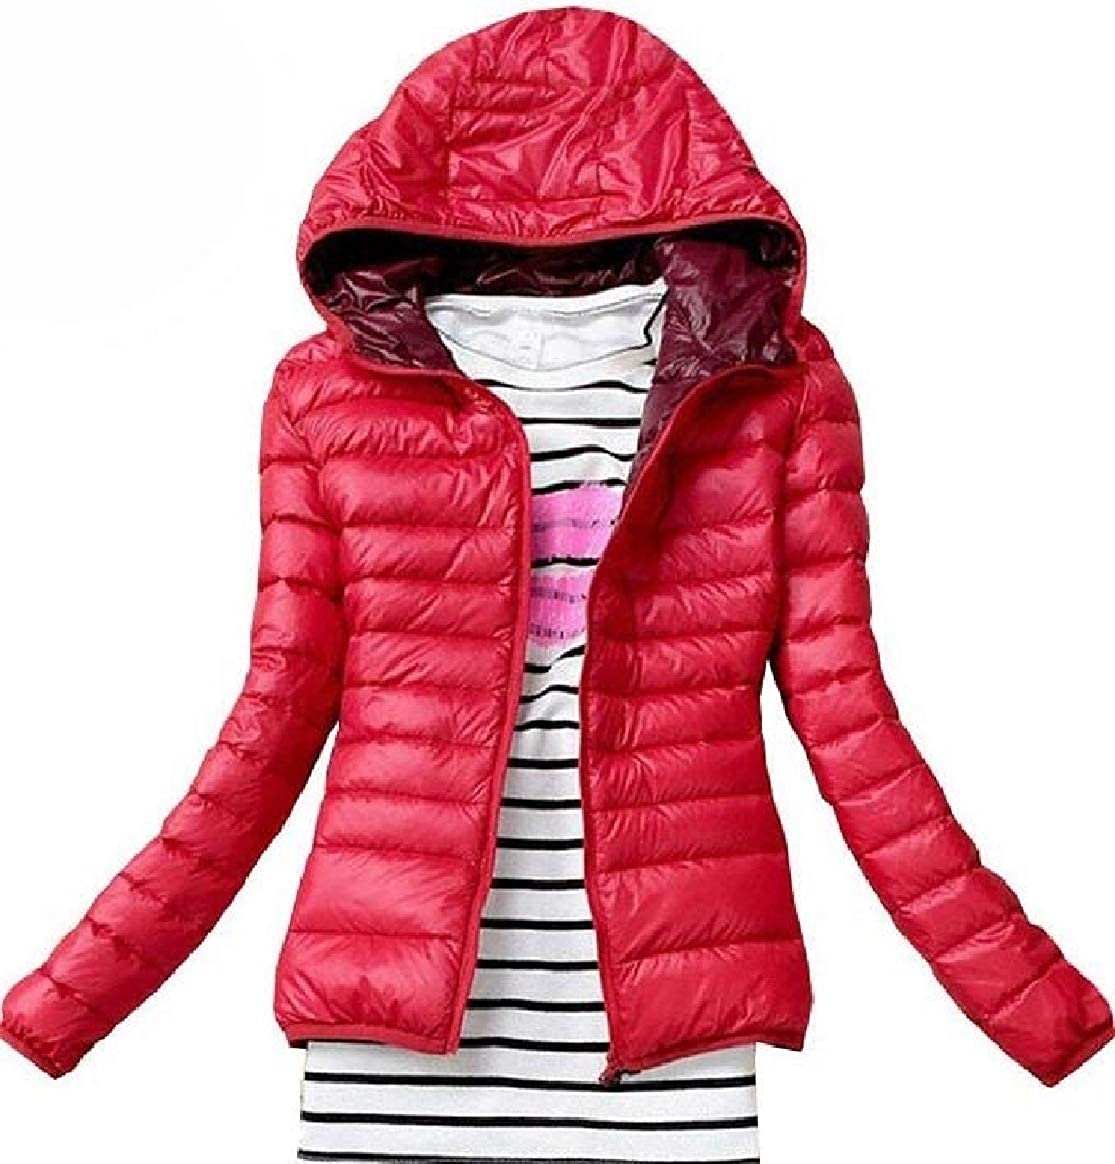 pujingge-CA Women Parka Winter Hooded Packable Quilted Lightweight Down Jacket Coat